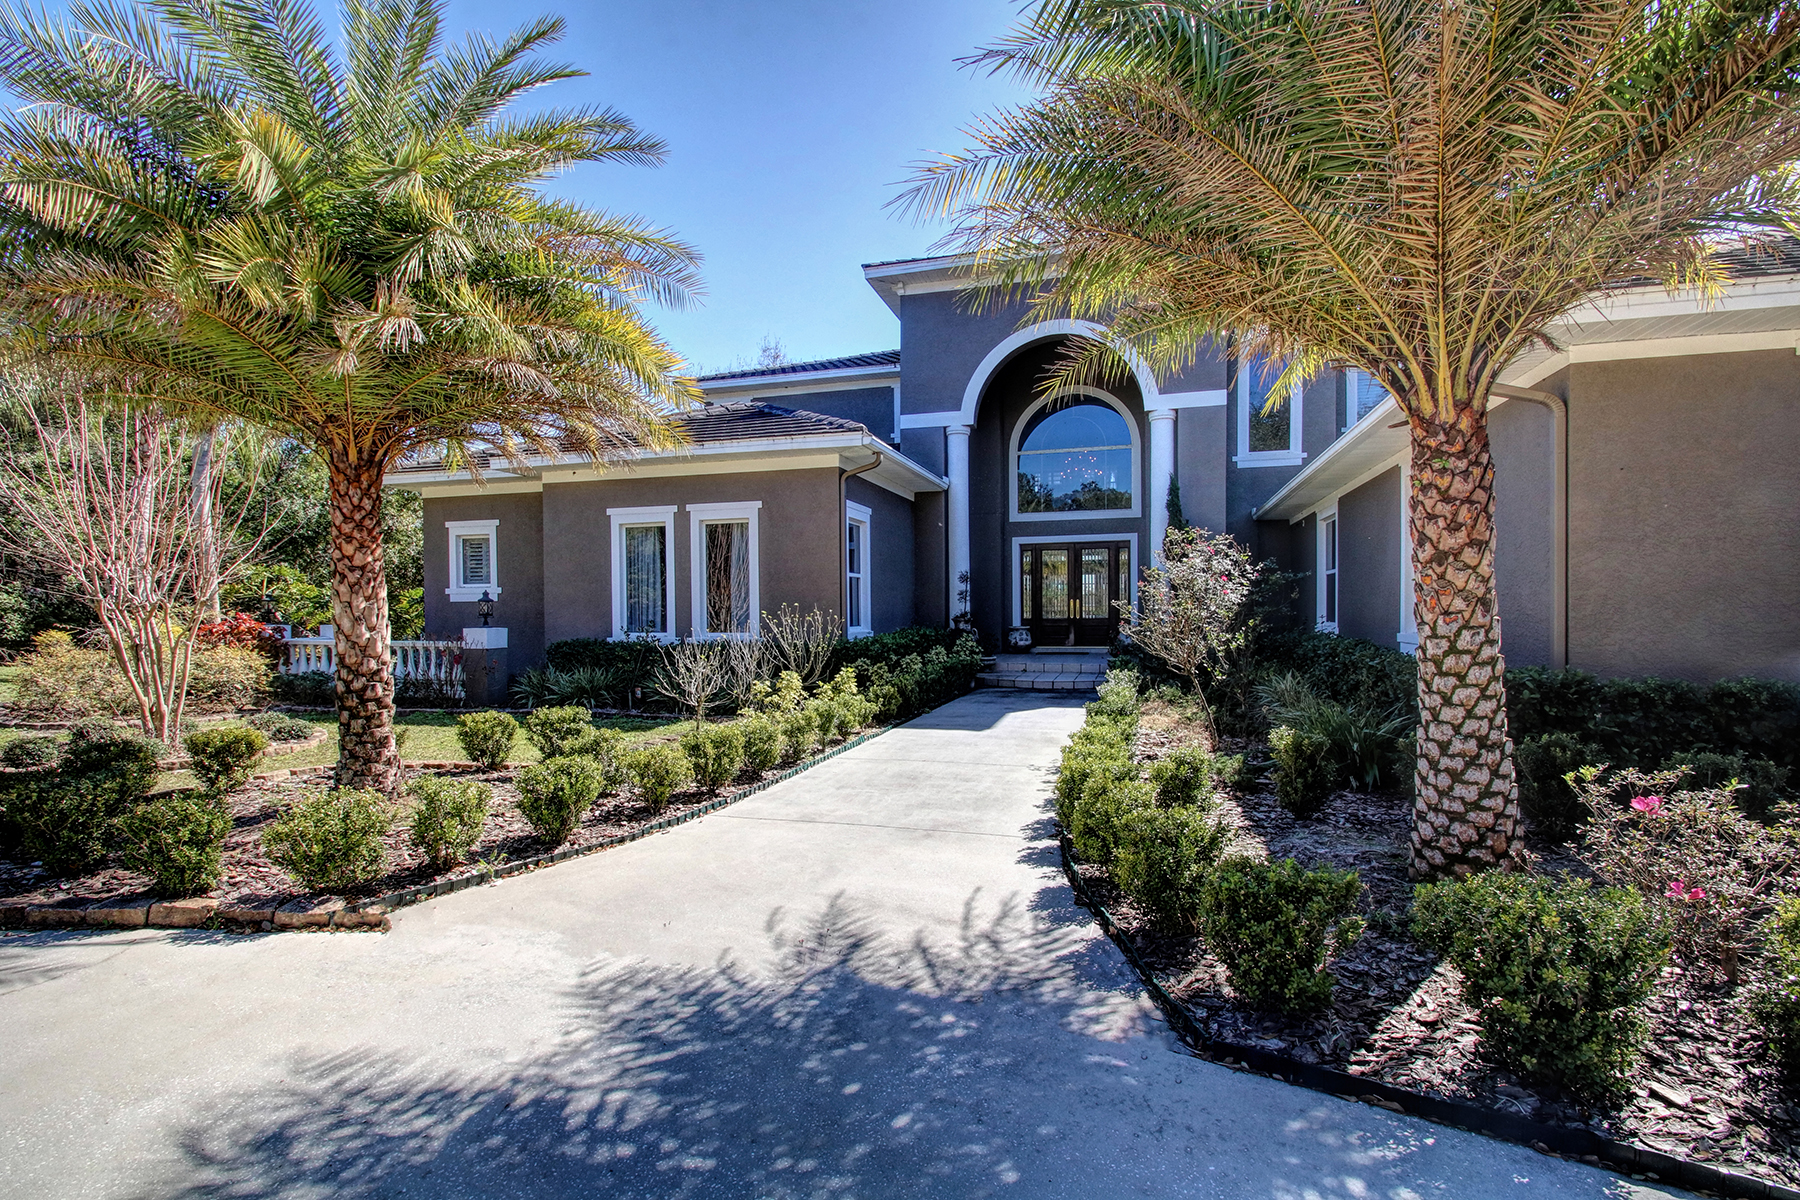 Single Family Home for Sale at ODESSA 17925 Spencer Rd, Odessa, Florida 33556 United States